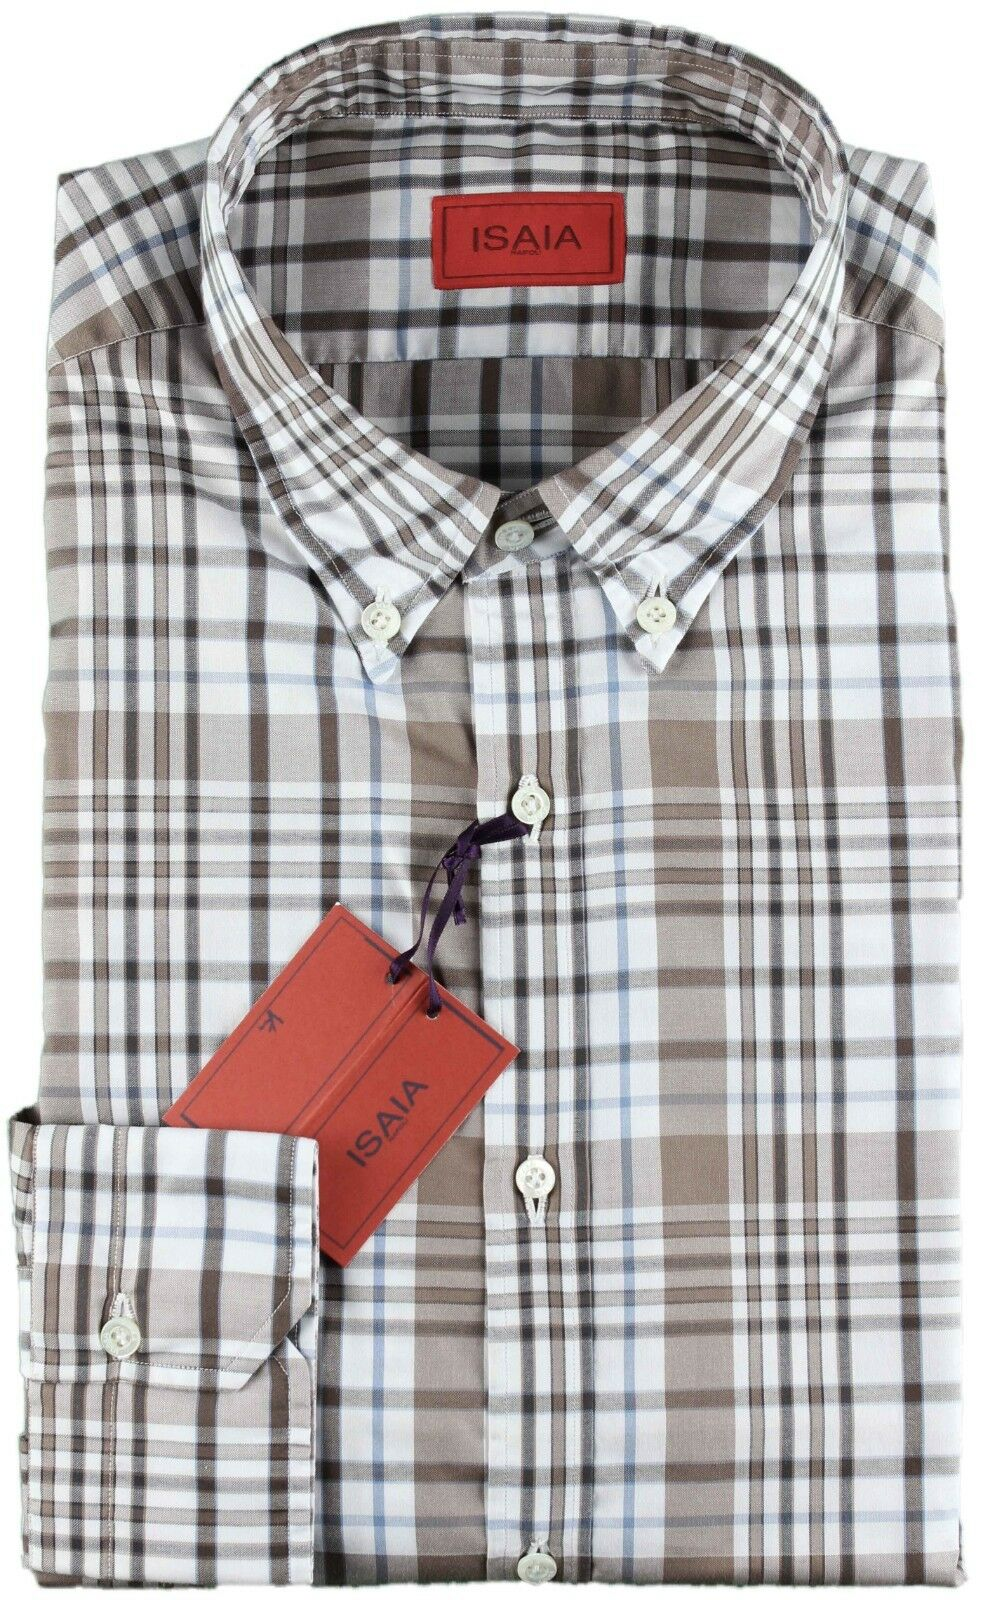 NWT ISAIA SHIRT white, beaver & bluee checked luxury handmade  43 17 SLIM